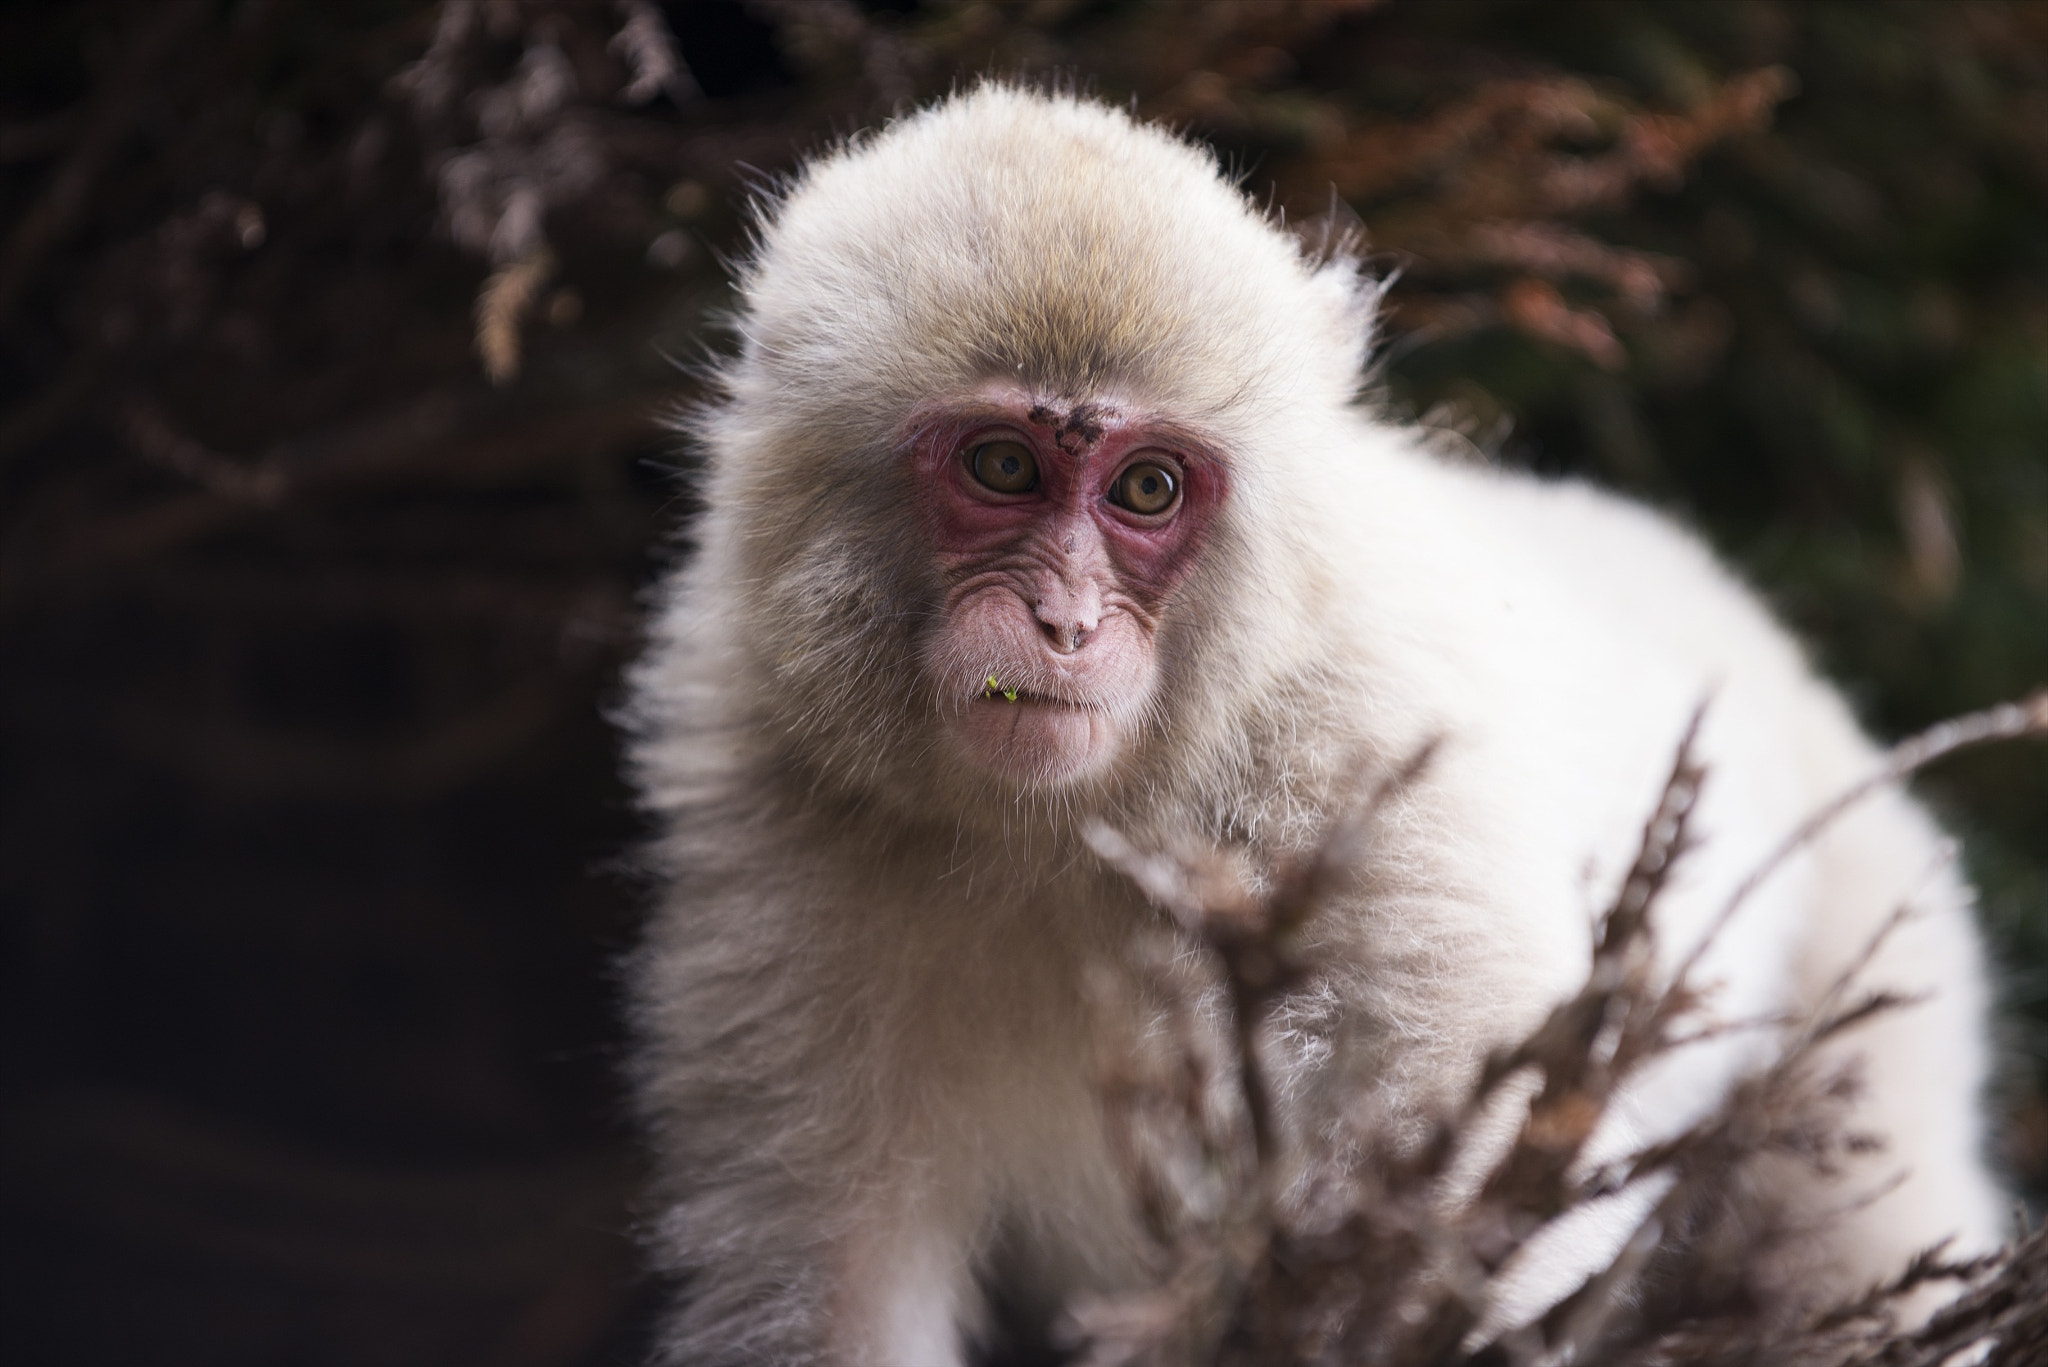 Photograph A lonely monkey by hugh dornan on 500px